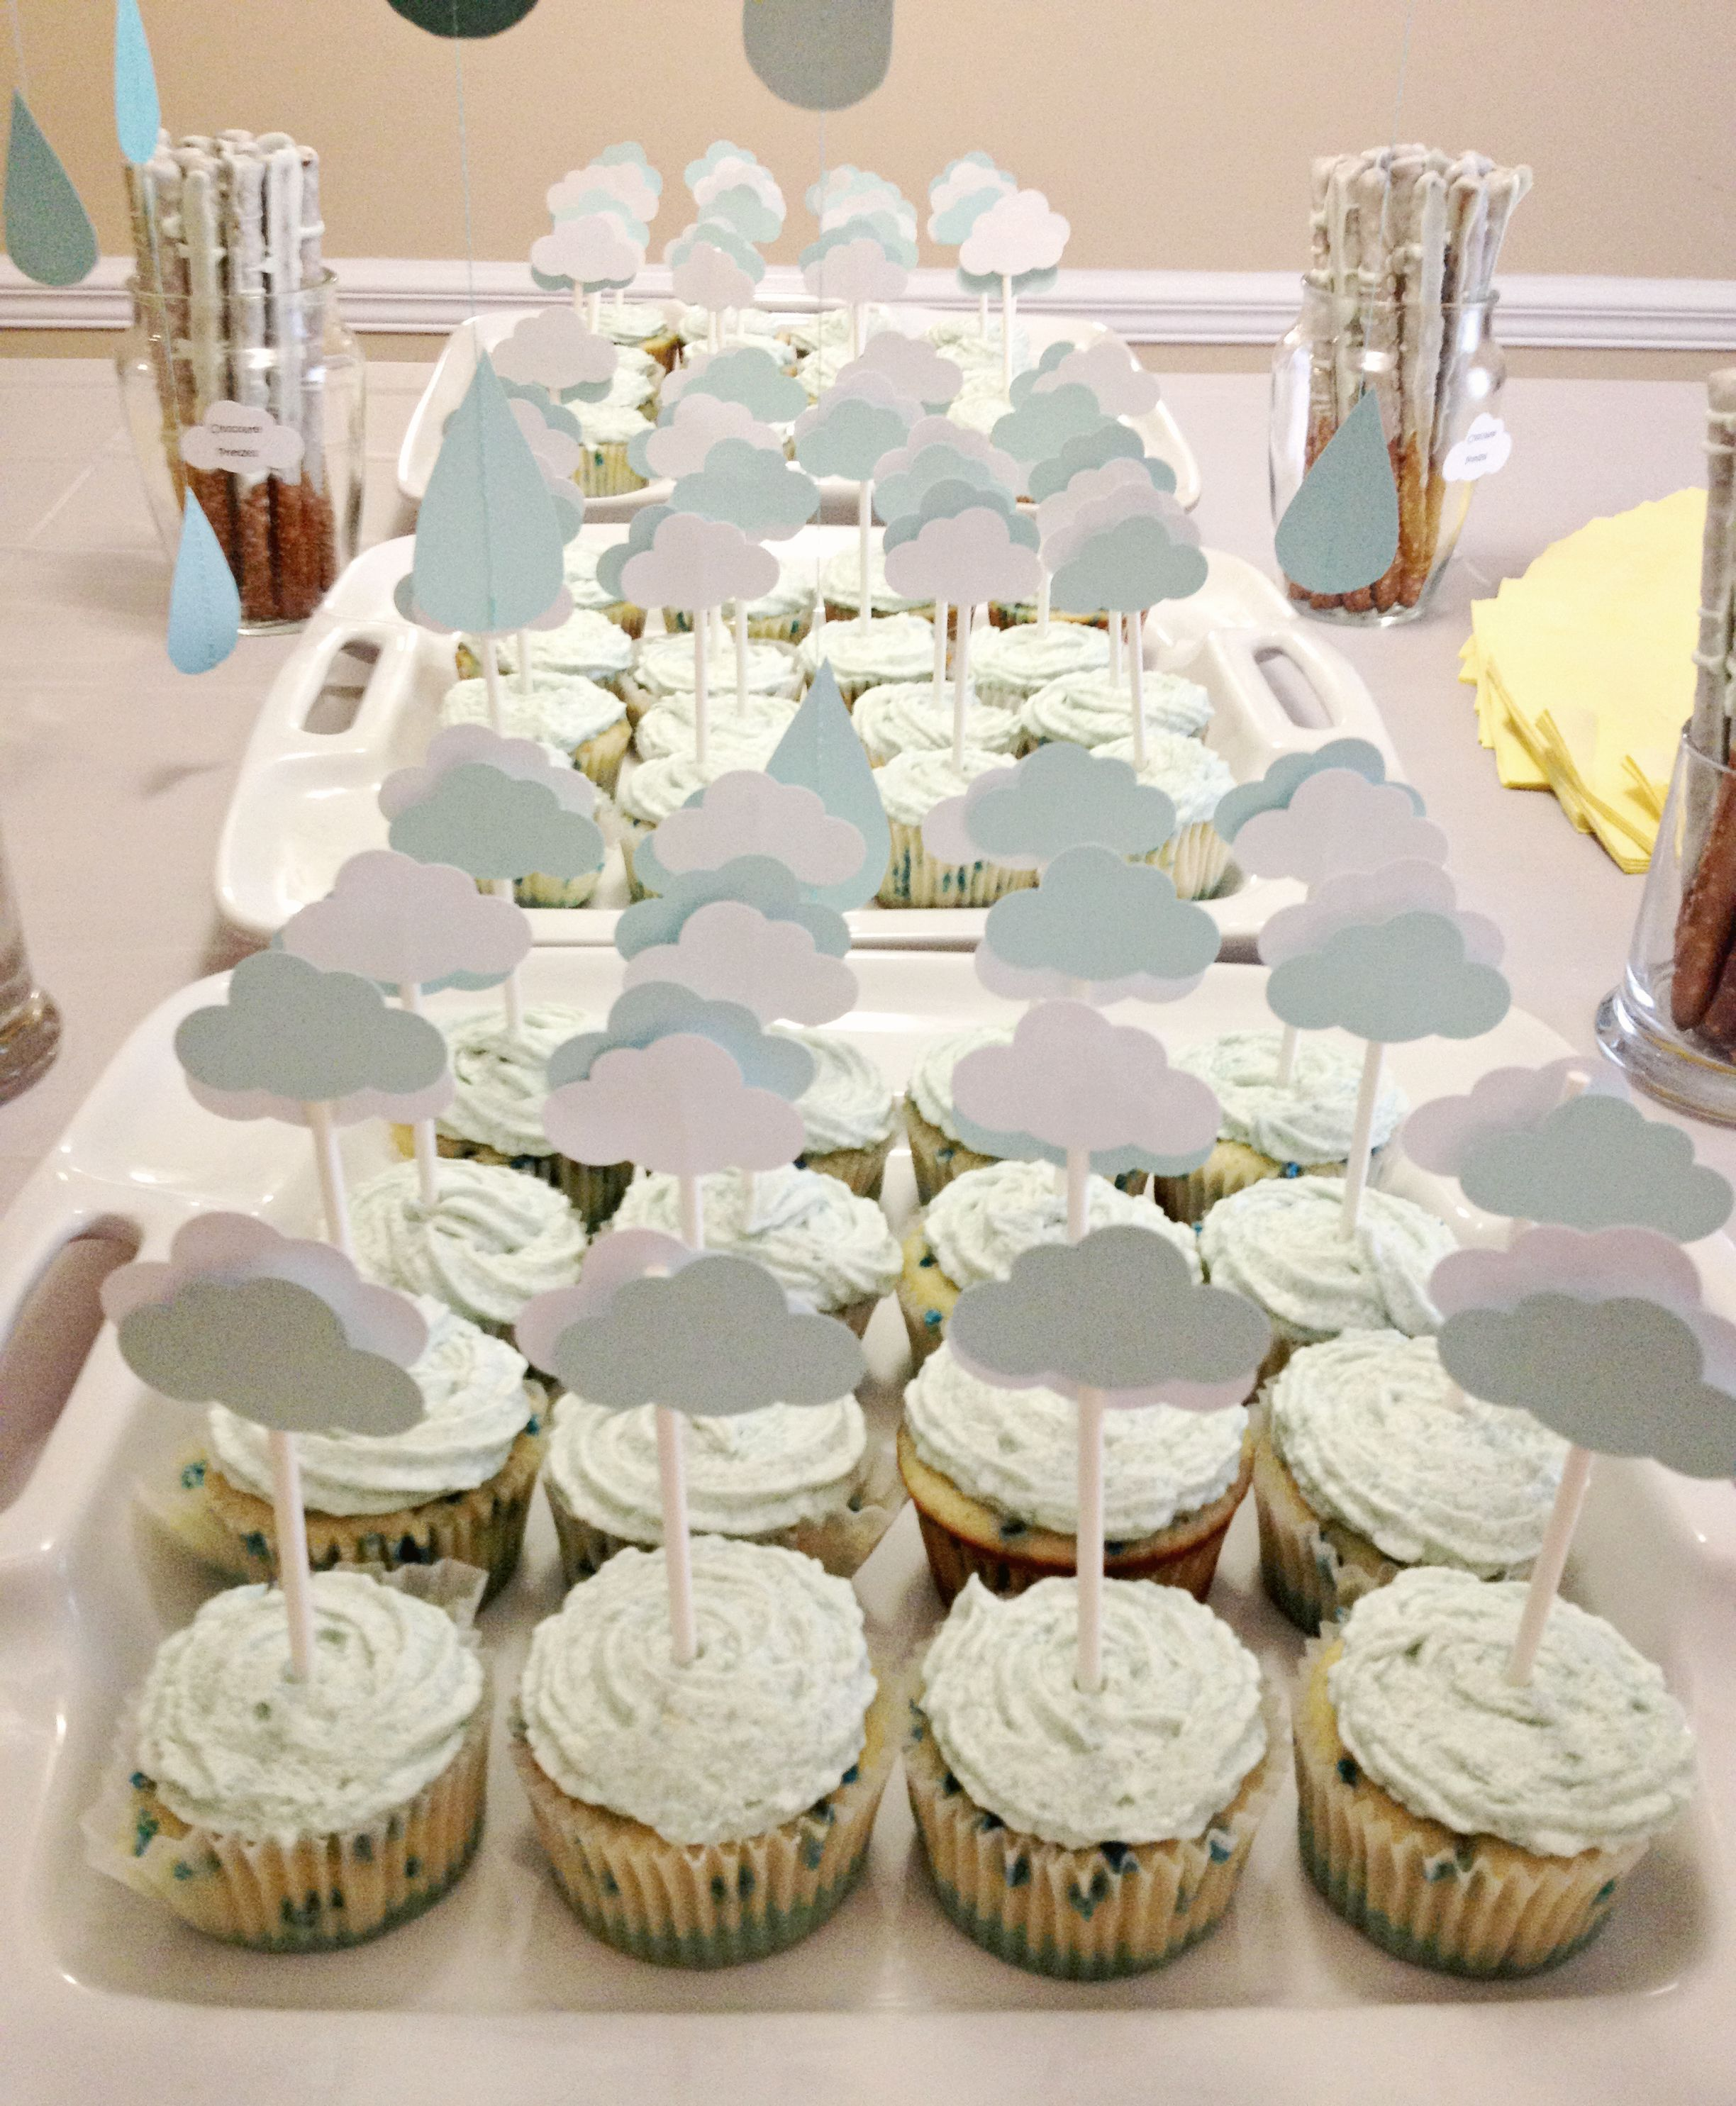 Rain Cloud Theme Baby Shower. Made cupcakes with raindrops and ...